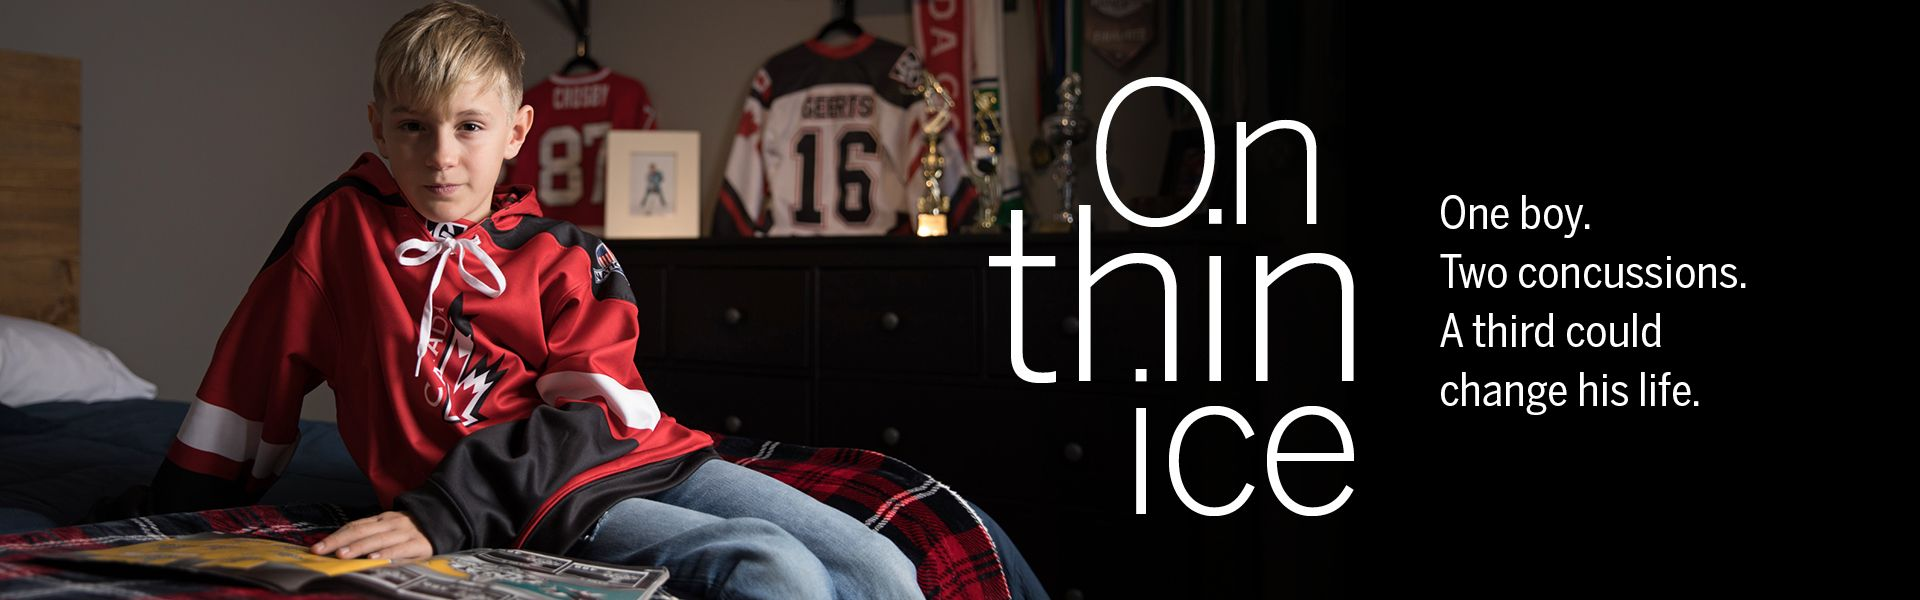 On Thin Ice  - Concussion Research at Western